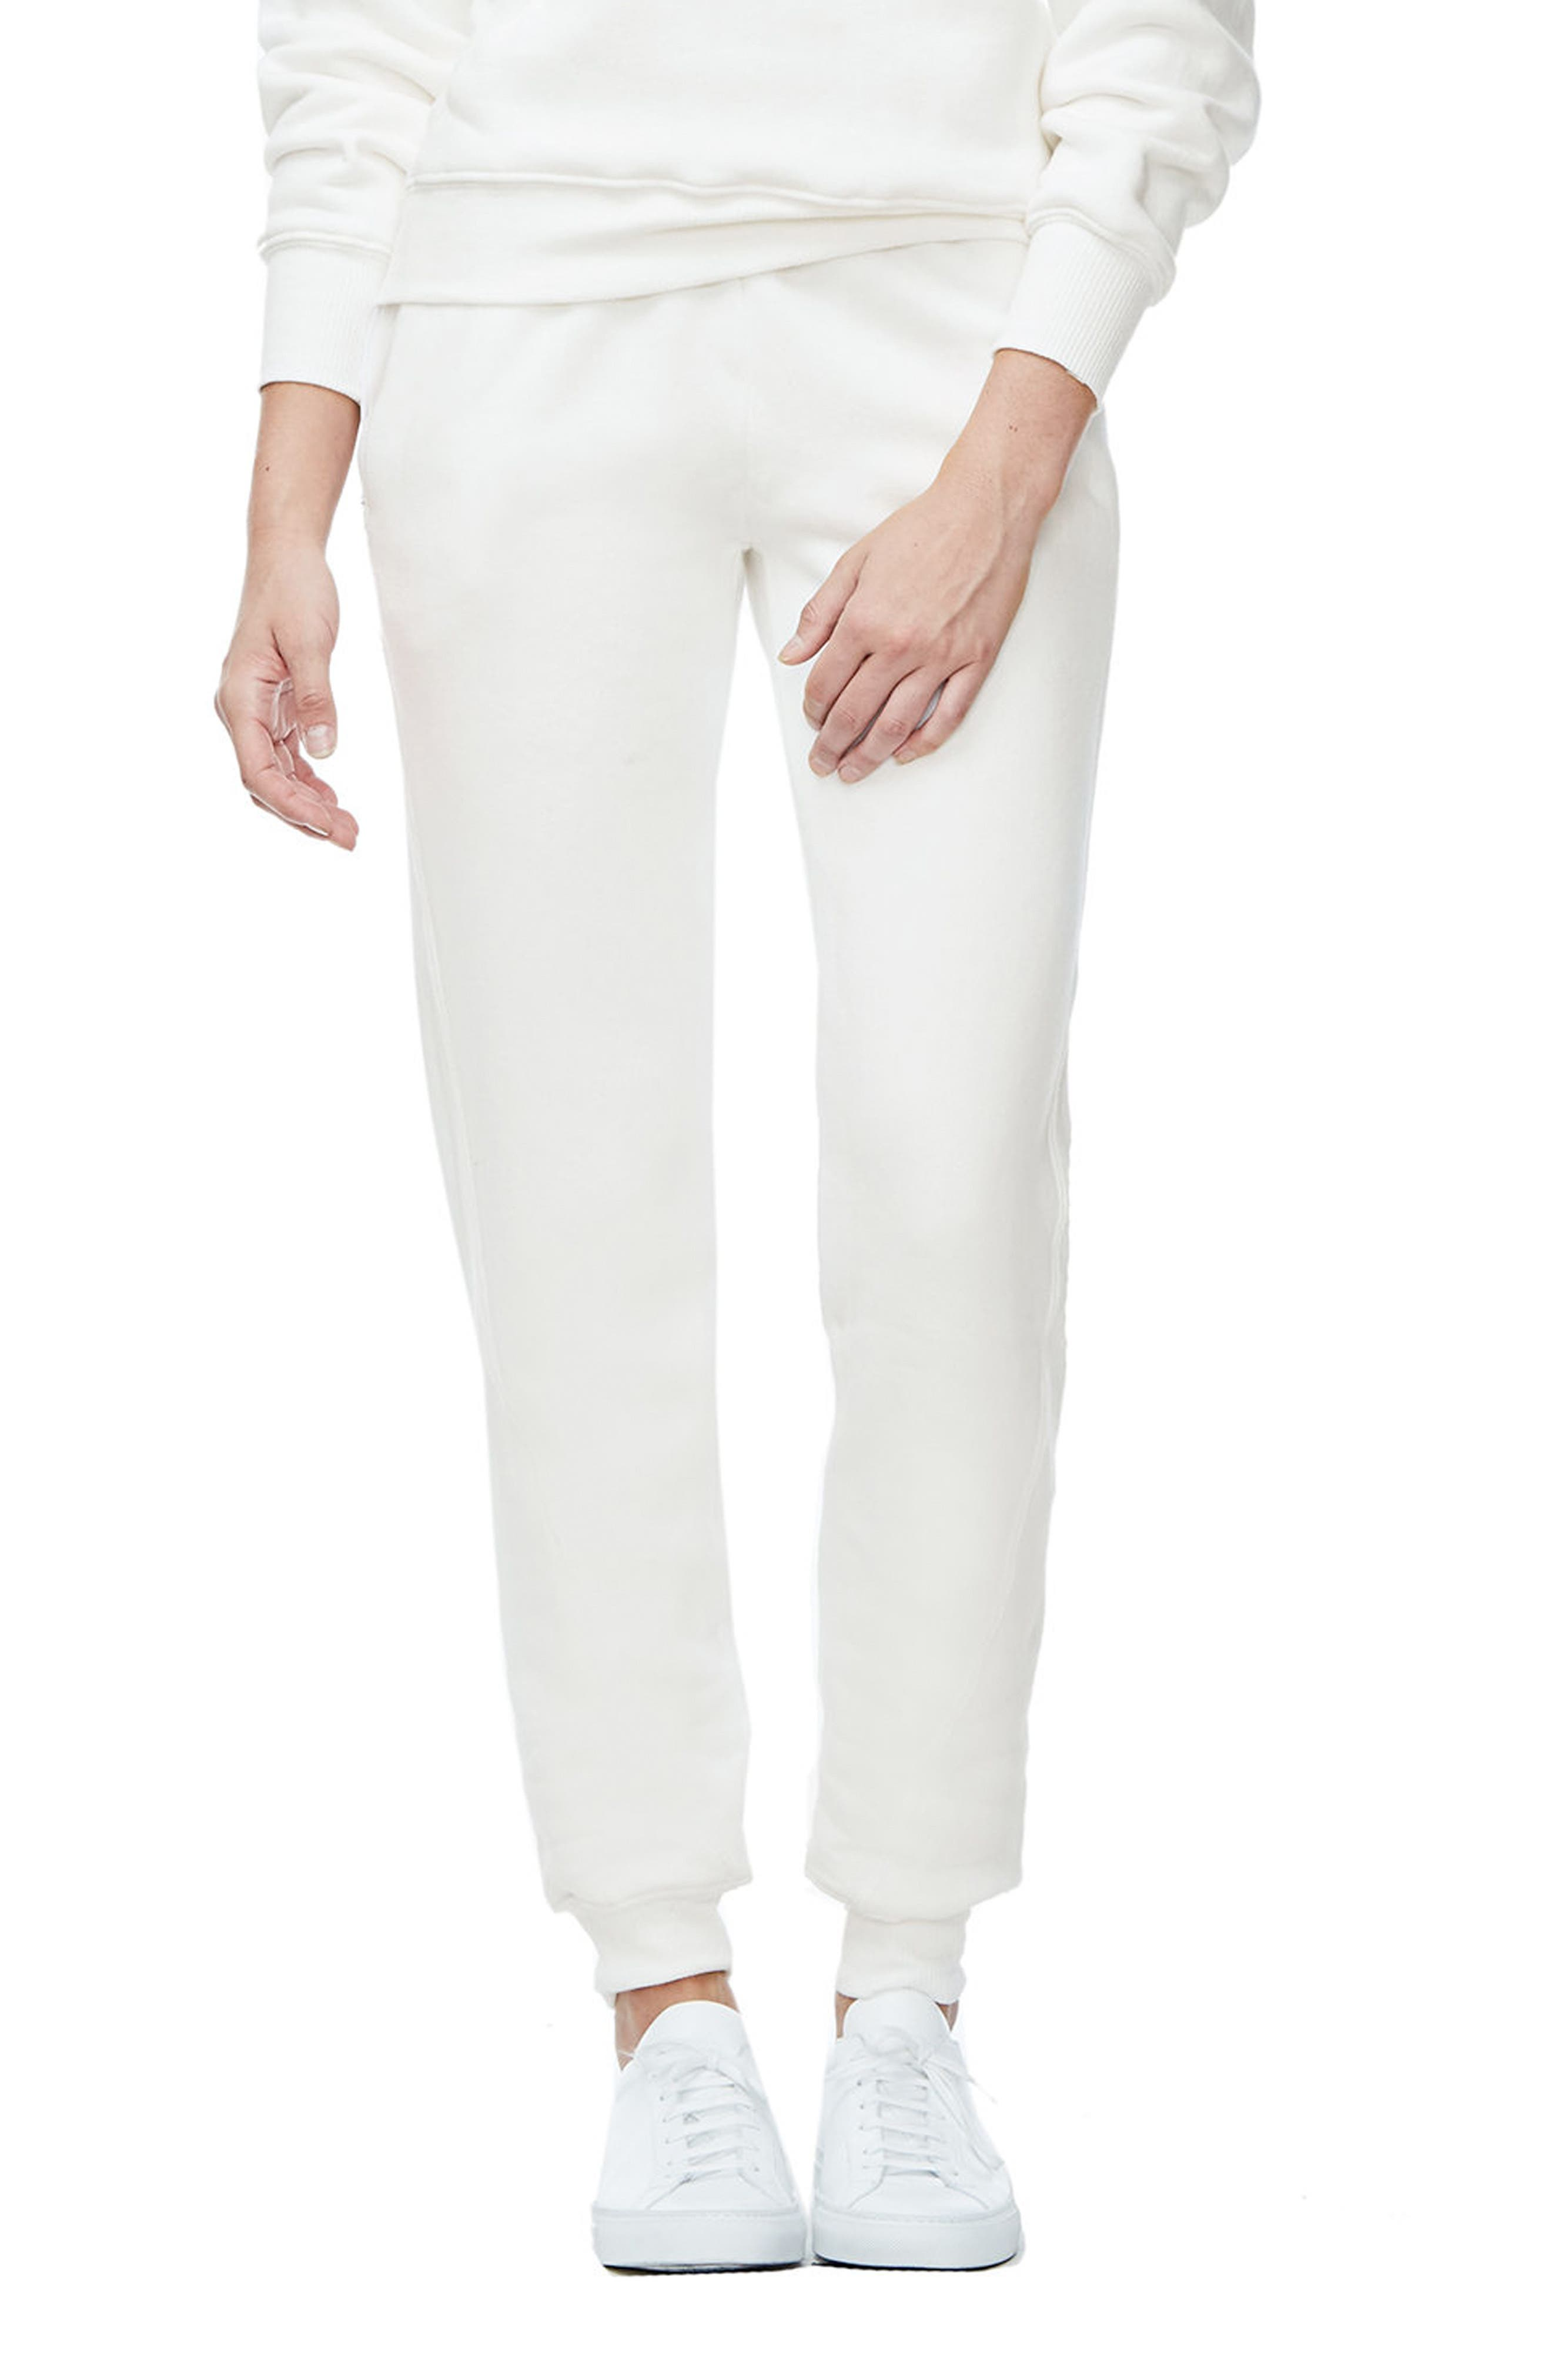 Good Sweats The Twisted Seam Pants,                         Main,                         color, Off White